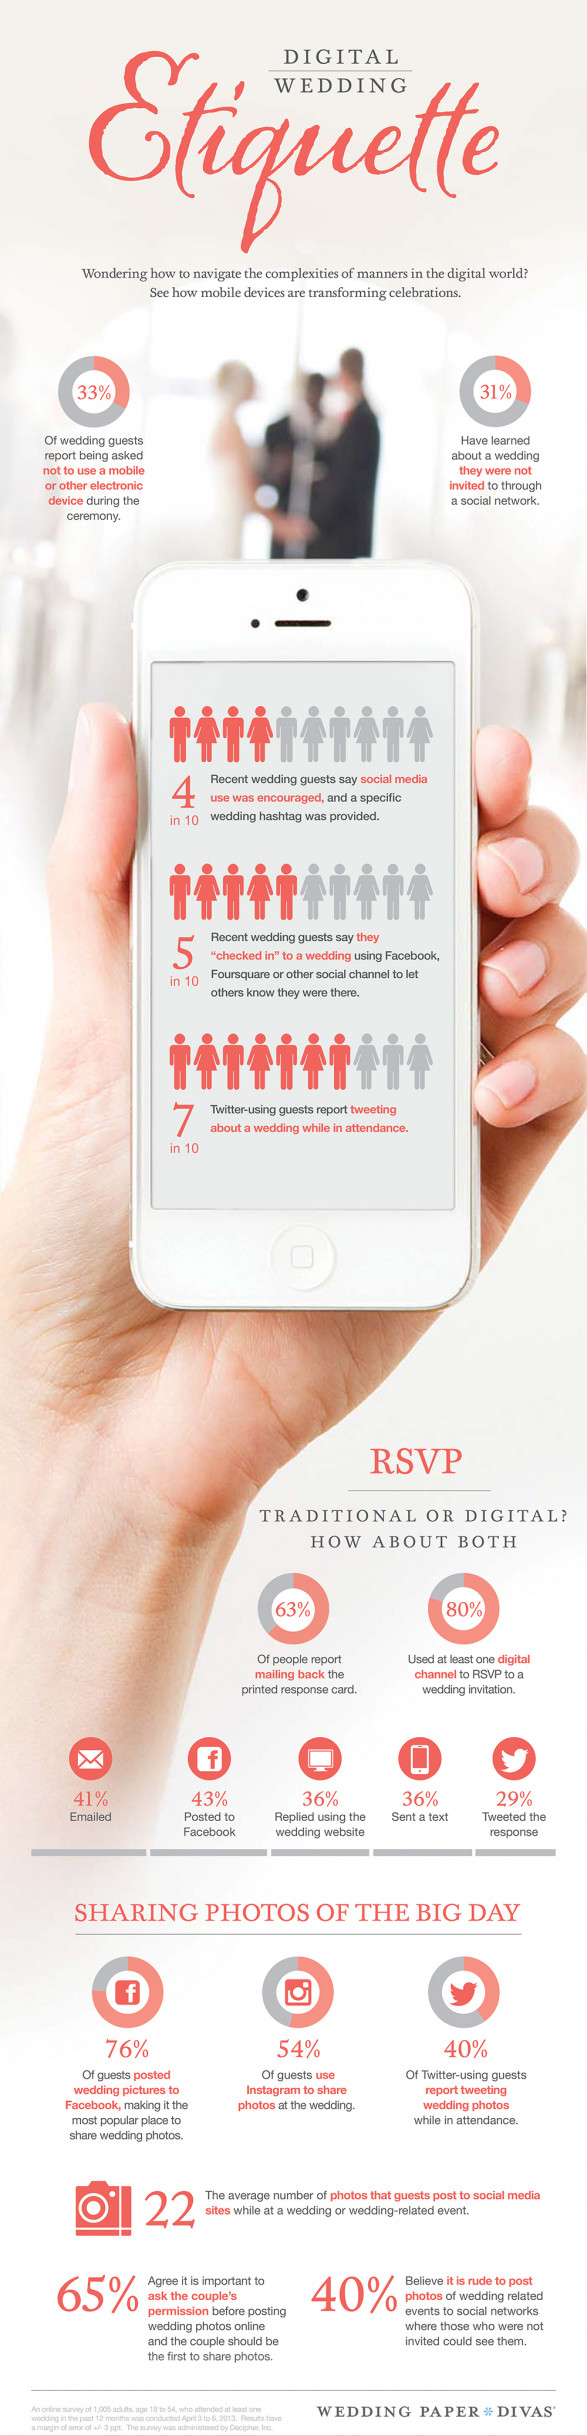 Digital Wedding Etiquette